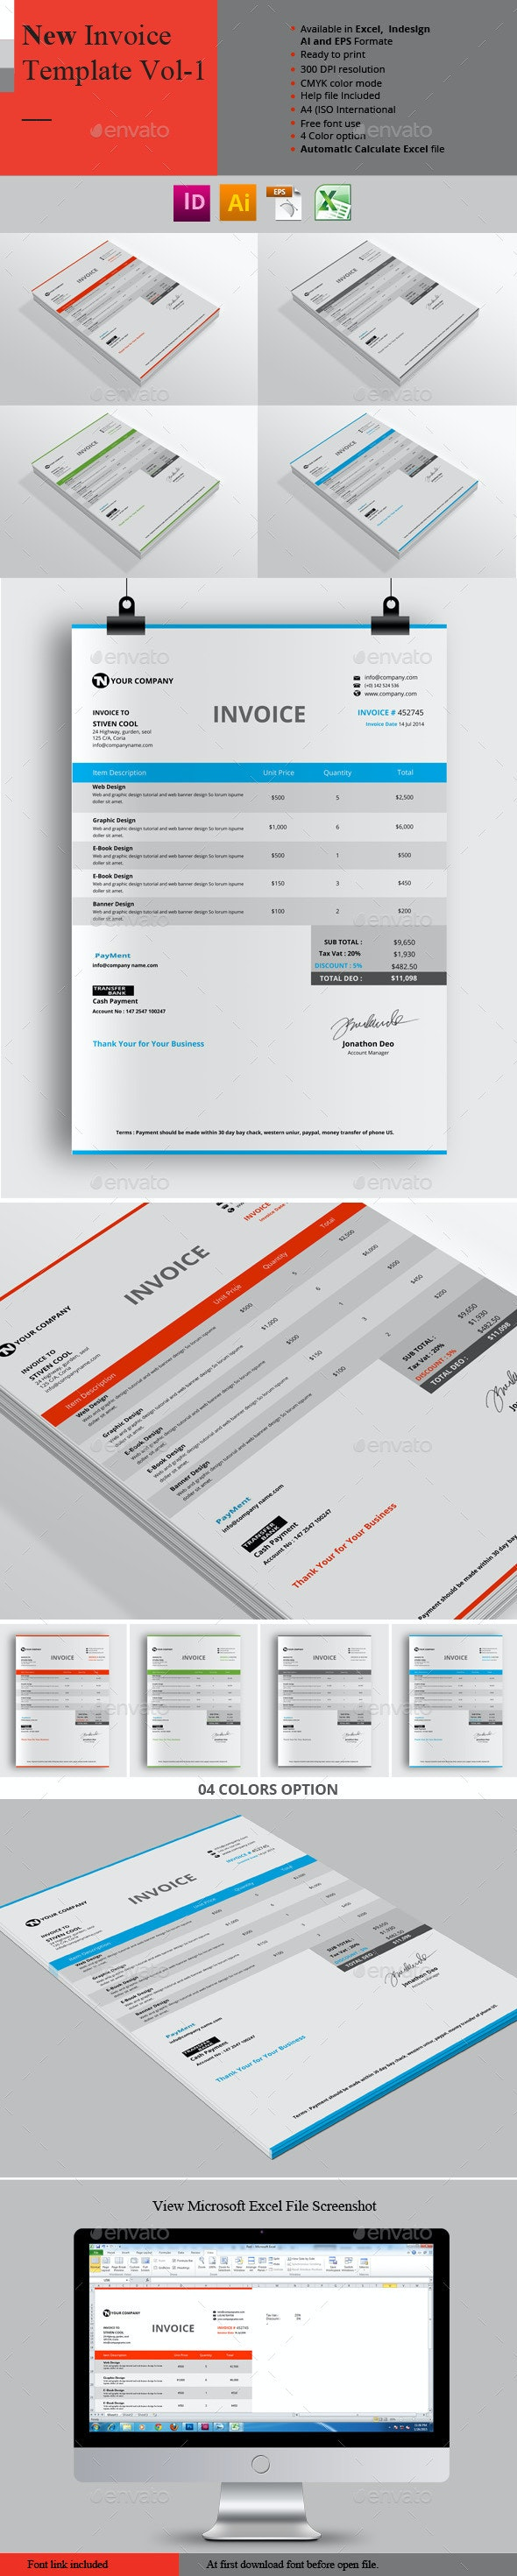 New Invoice Template Vol-1 - Proposals & Invoices Stationery